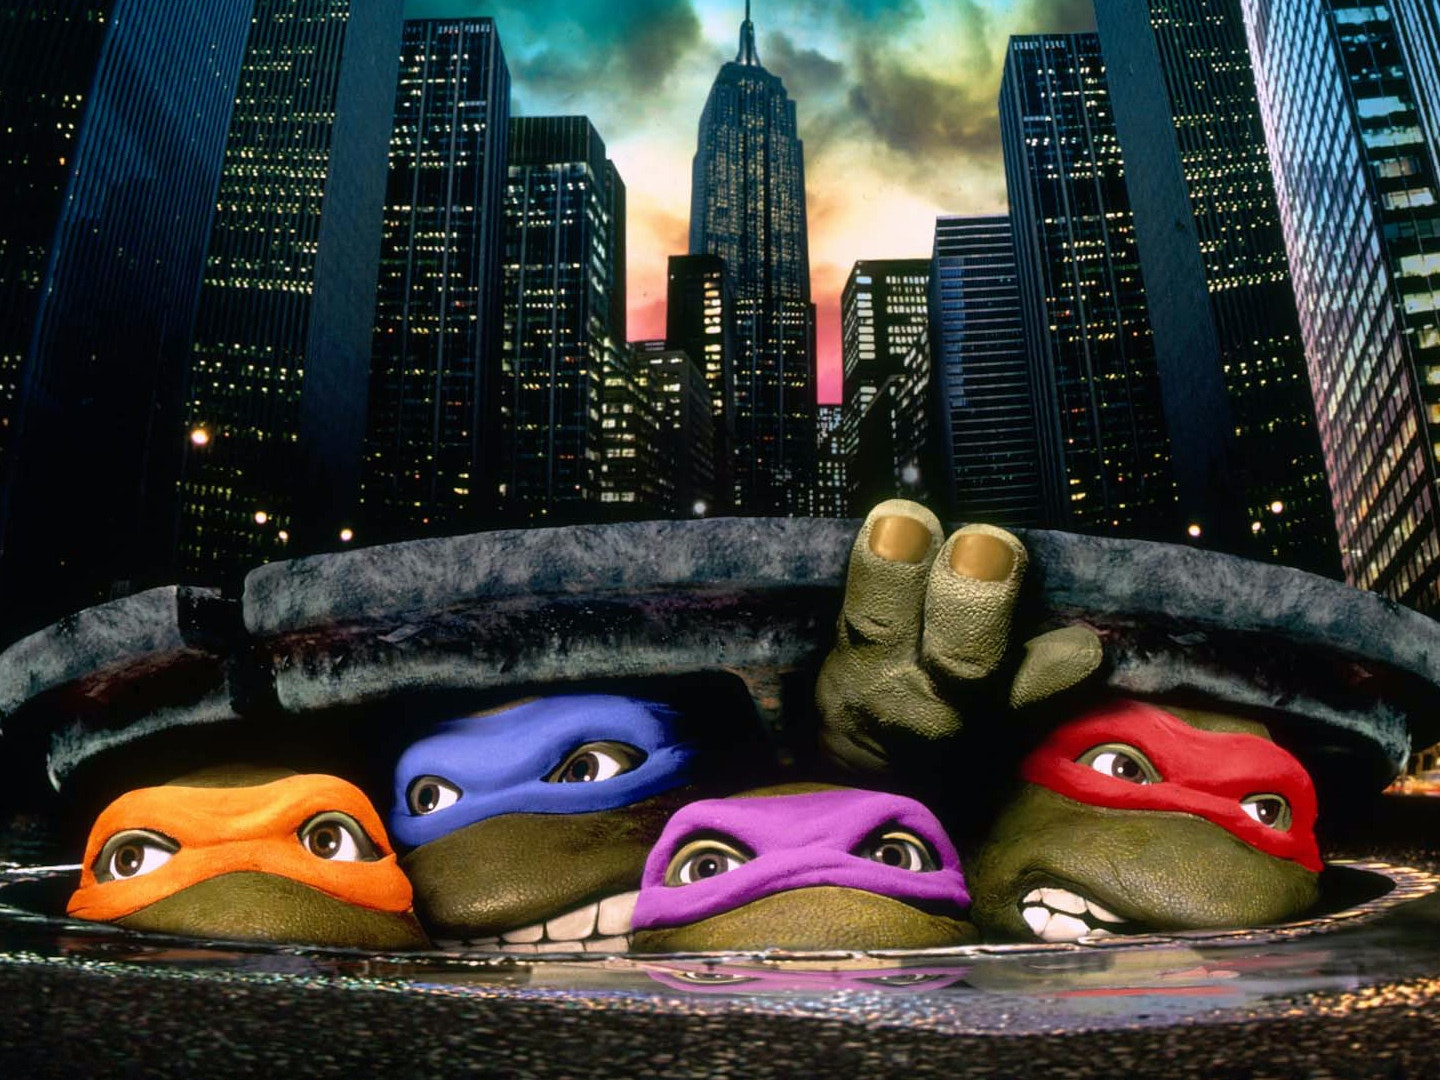 1990's 'Teenage Mutant Ninja Turtles' and Multi-Generational Appeal